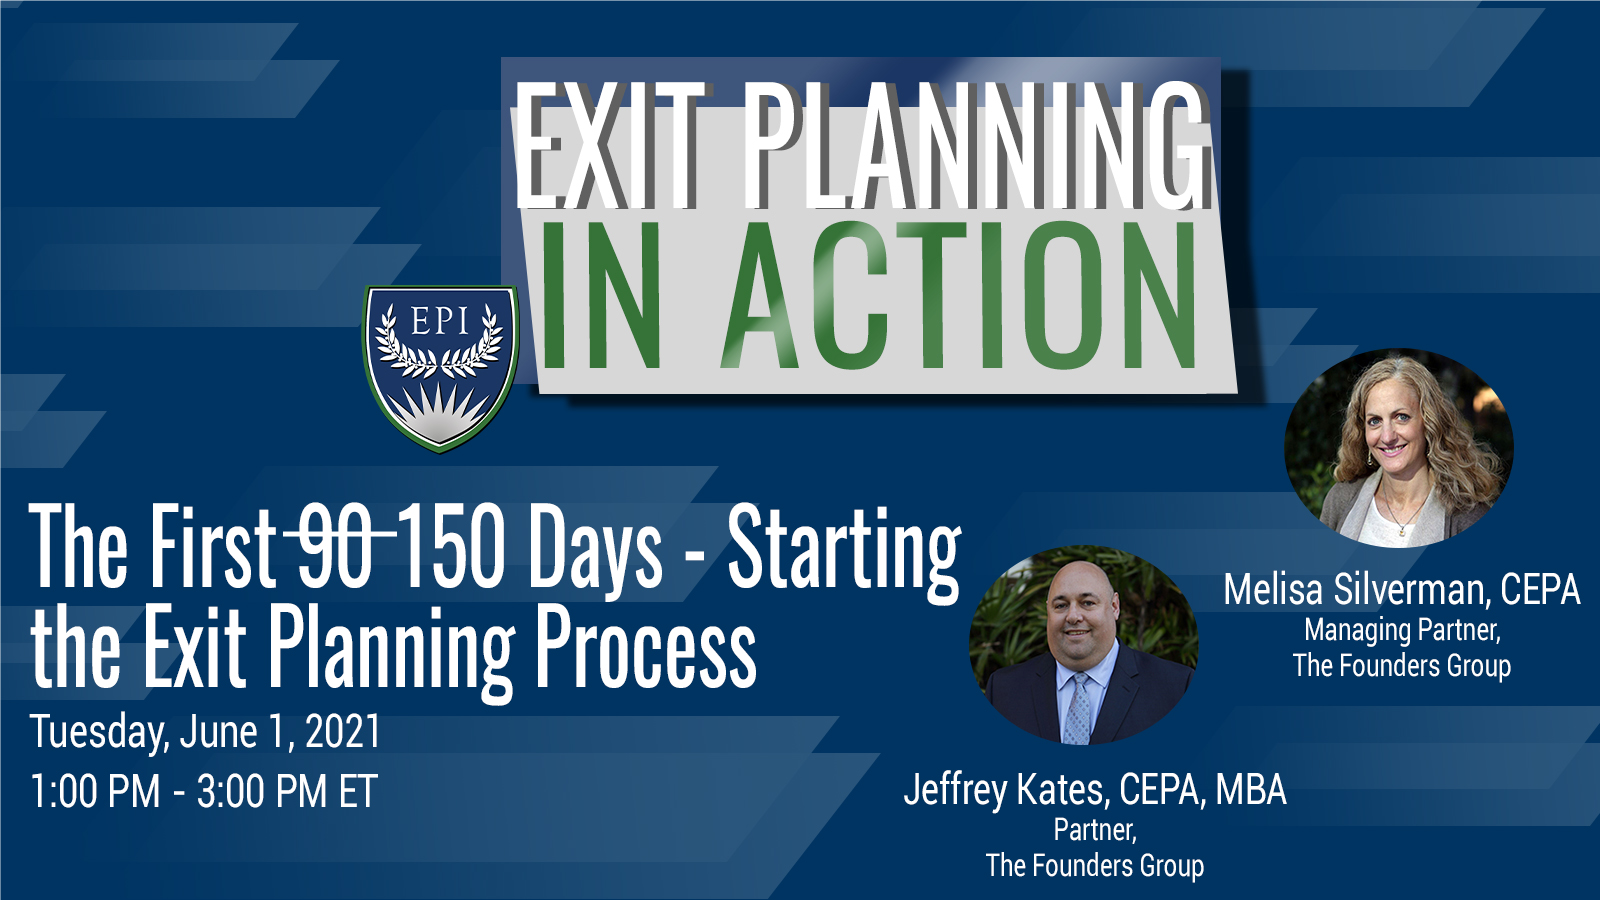 The First 150 Days - Starting the Exit Planning Process